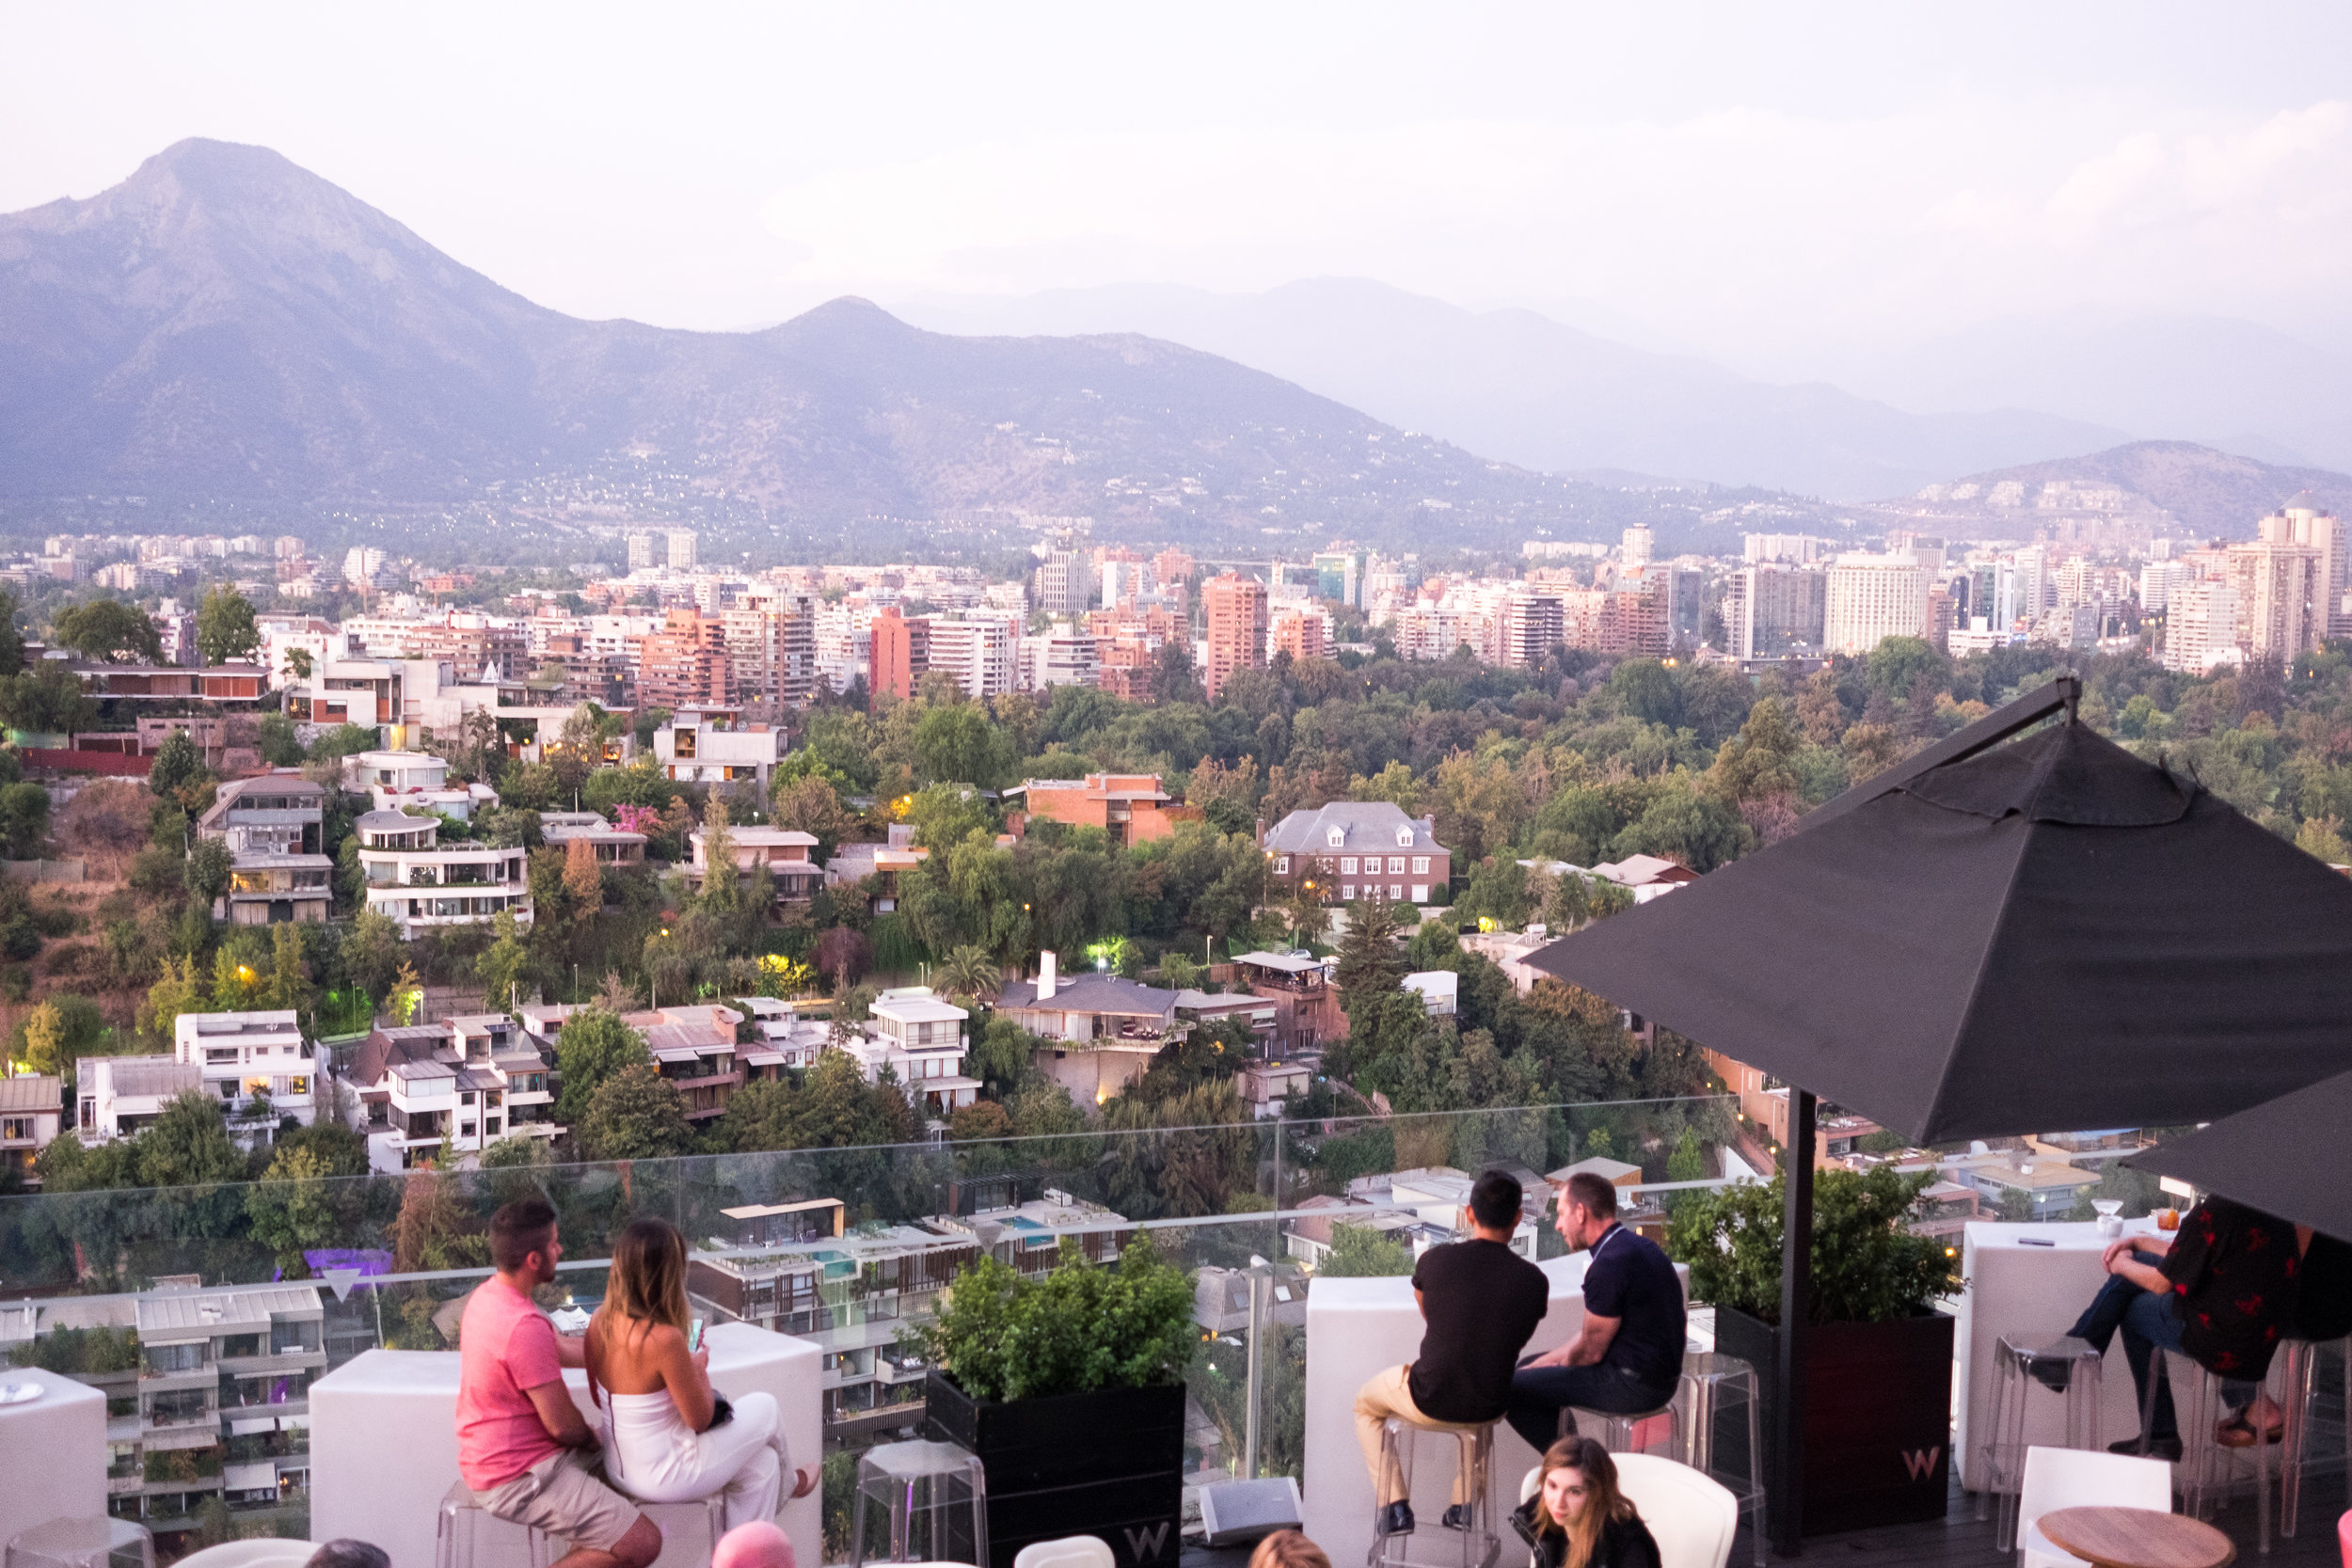 The rooftop bar at the W hotel